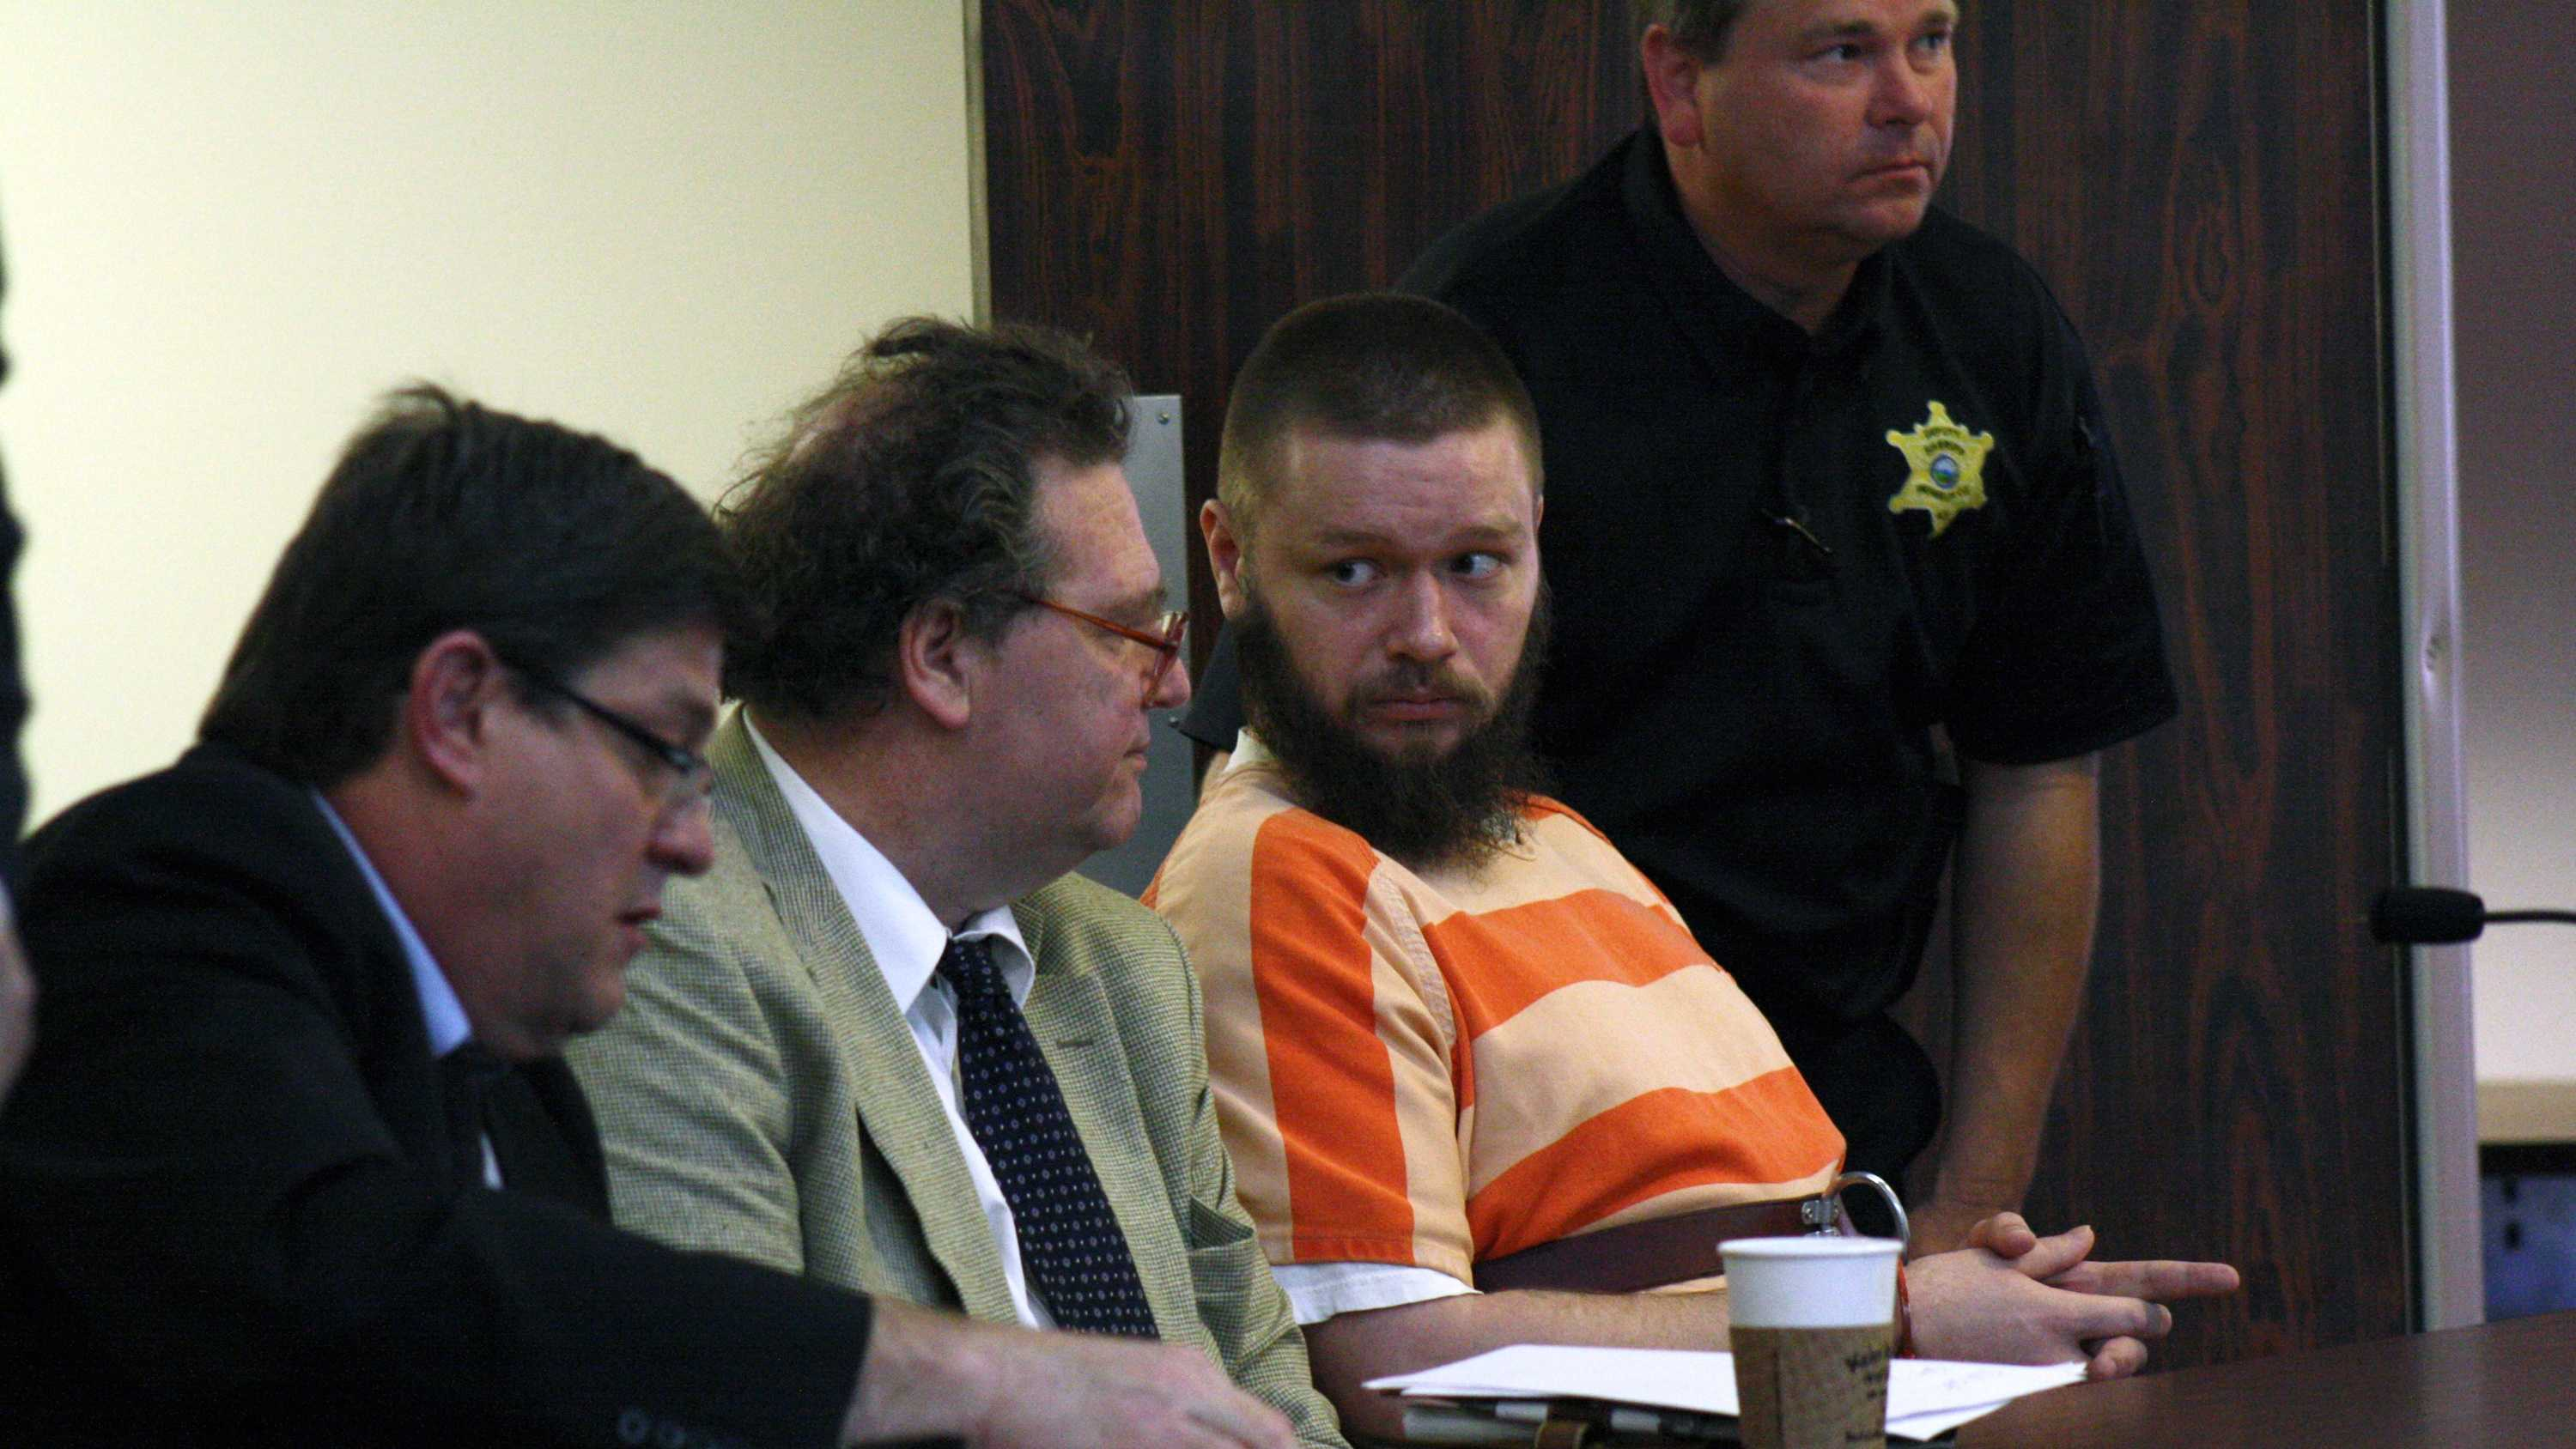 "Kyle Flack, 28, Ottawa, right, sits Tuesday morning with his attorneys, Tim Frieden and Ronald Evans, both of whom work with the Kansas Death Penalty Defense Unit. Prosecutors are seeking the death penalty against Flack, who is charged in a spring 2013 quadruple homicide at a home west of Ottawa. The death penalty attempt is connected to the capital murder charge Flack faces in the killings of Kaylie Bailey and her 18-month-old daughter, Lana Bailey. Flack also faces two charges of first-degree murder, which each carry a ""Hard 50"" sentence if convicted, in the killings of Andrew Stout and Steven White, as well as one count of criminal possession of a firearm. (Photo by Clinton Dick/The Ottawa Herald)"